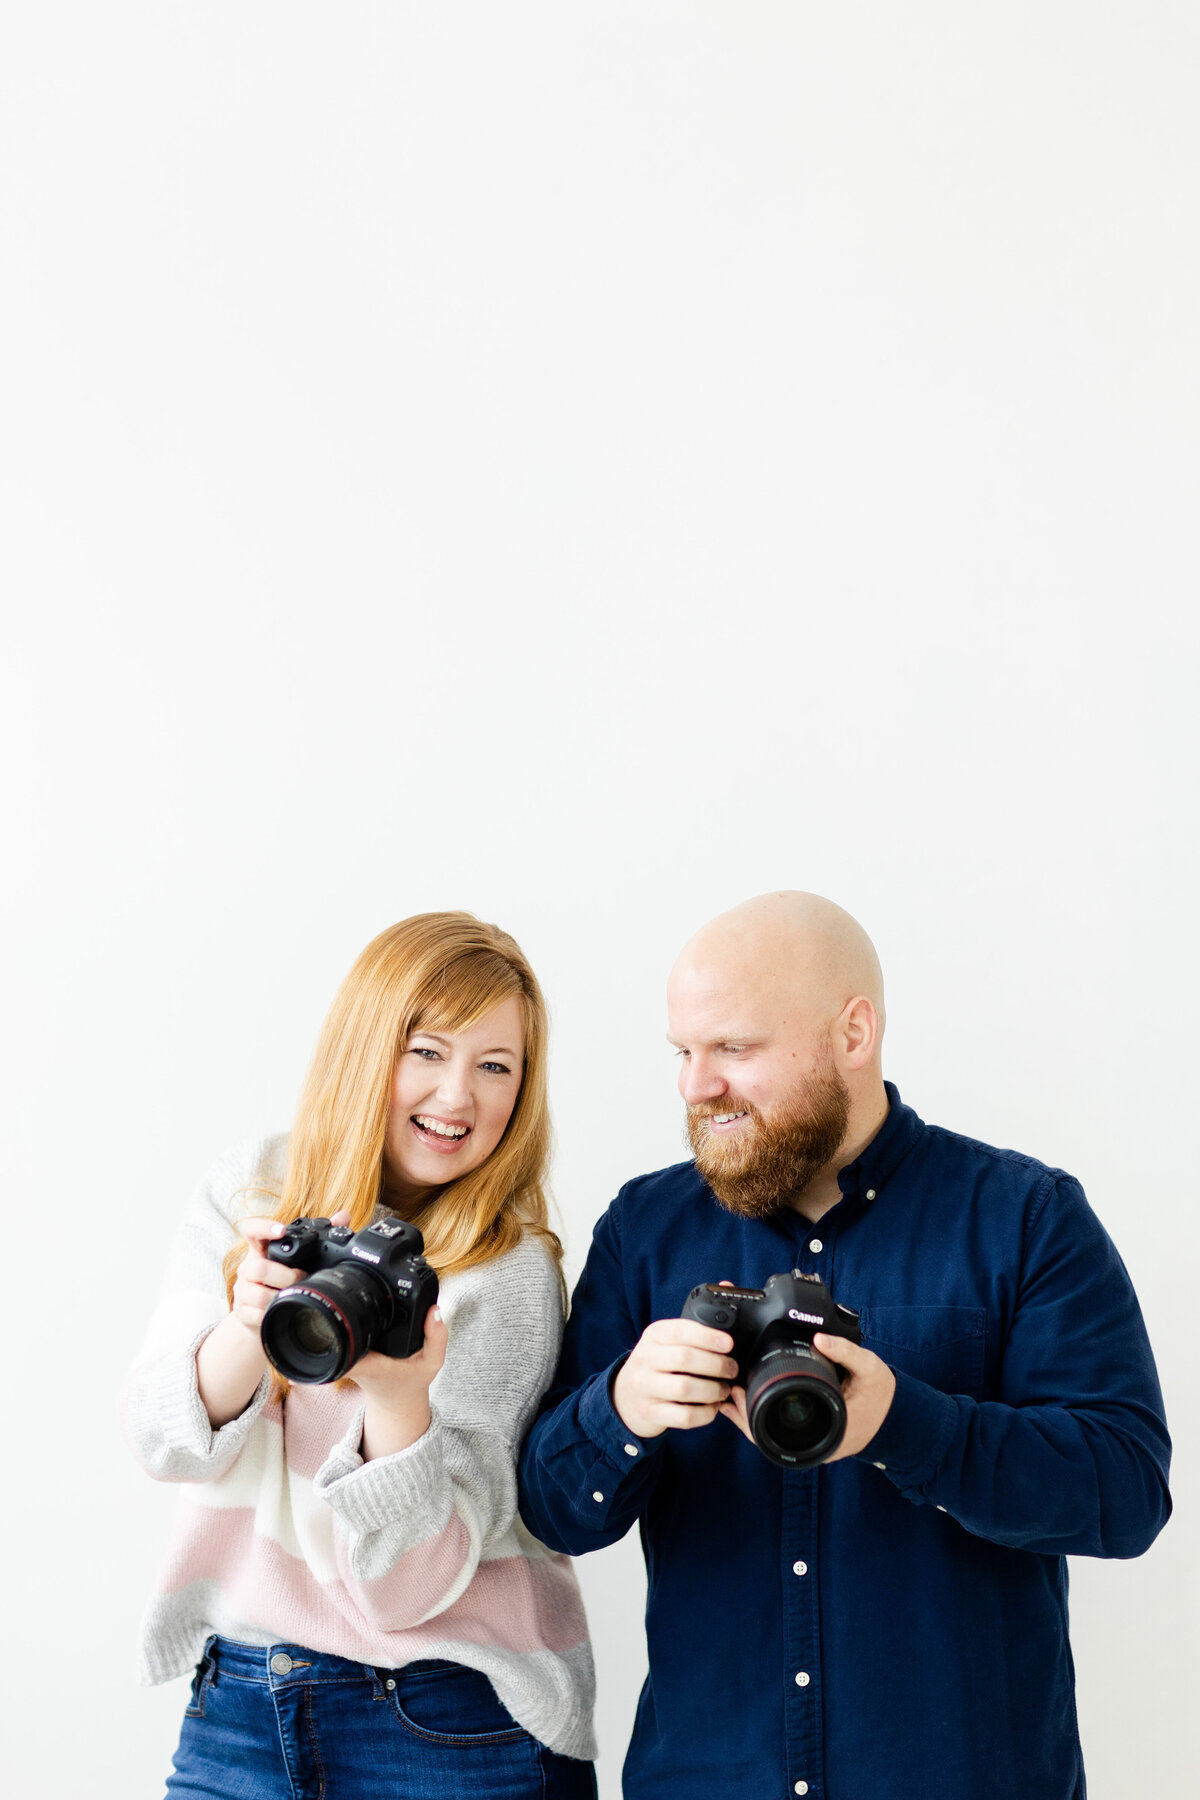 husband and wife wedding photographers posing with cameras for branding shoot